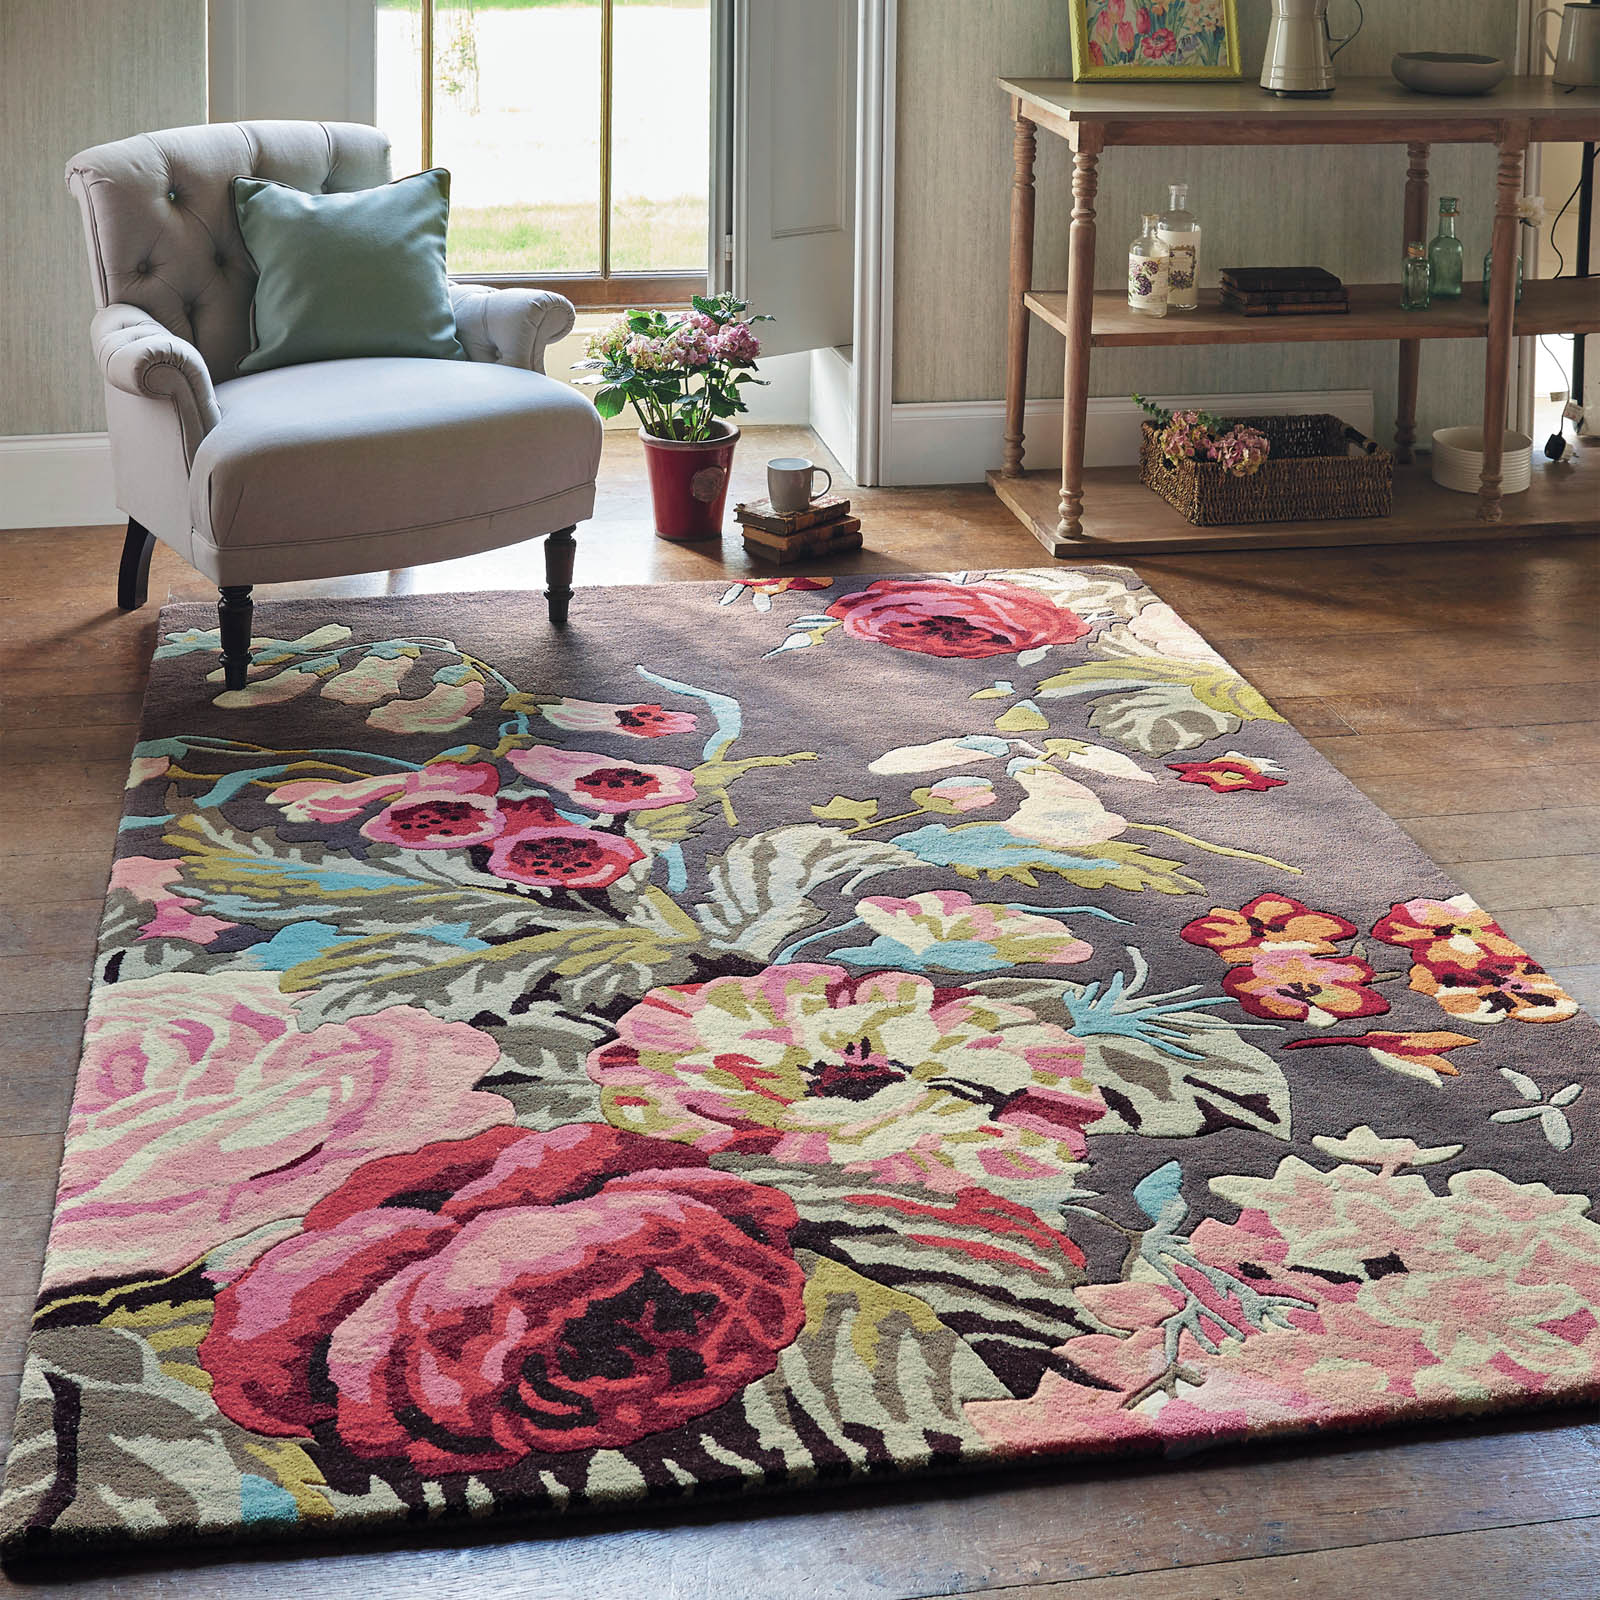 Sanderson Rugs At The Rug Seller